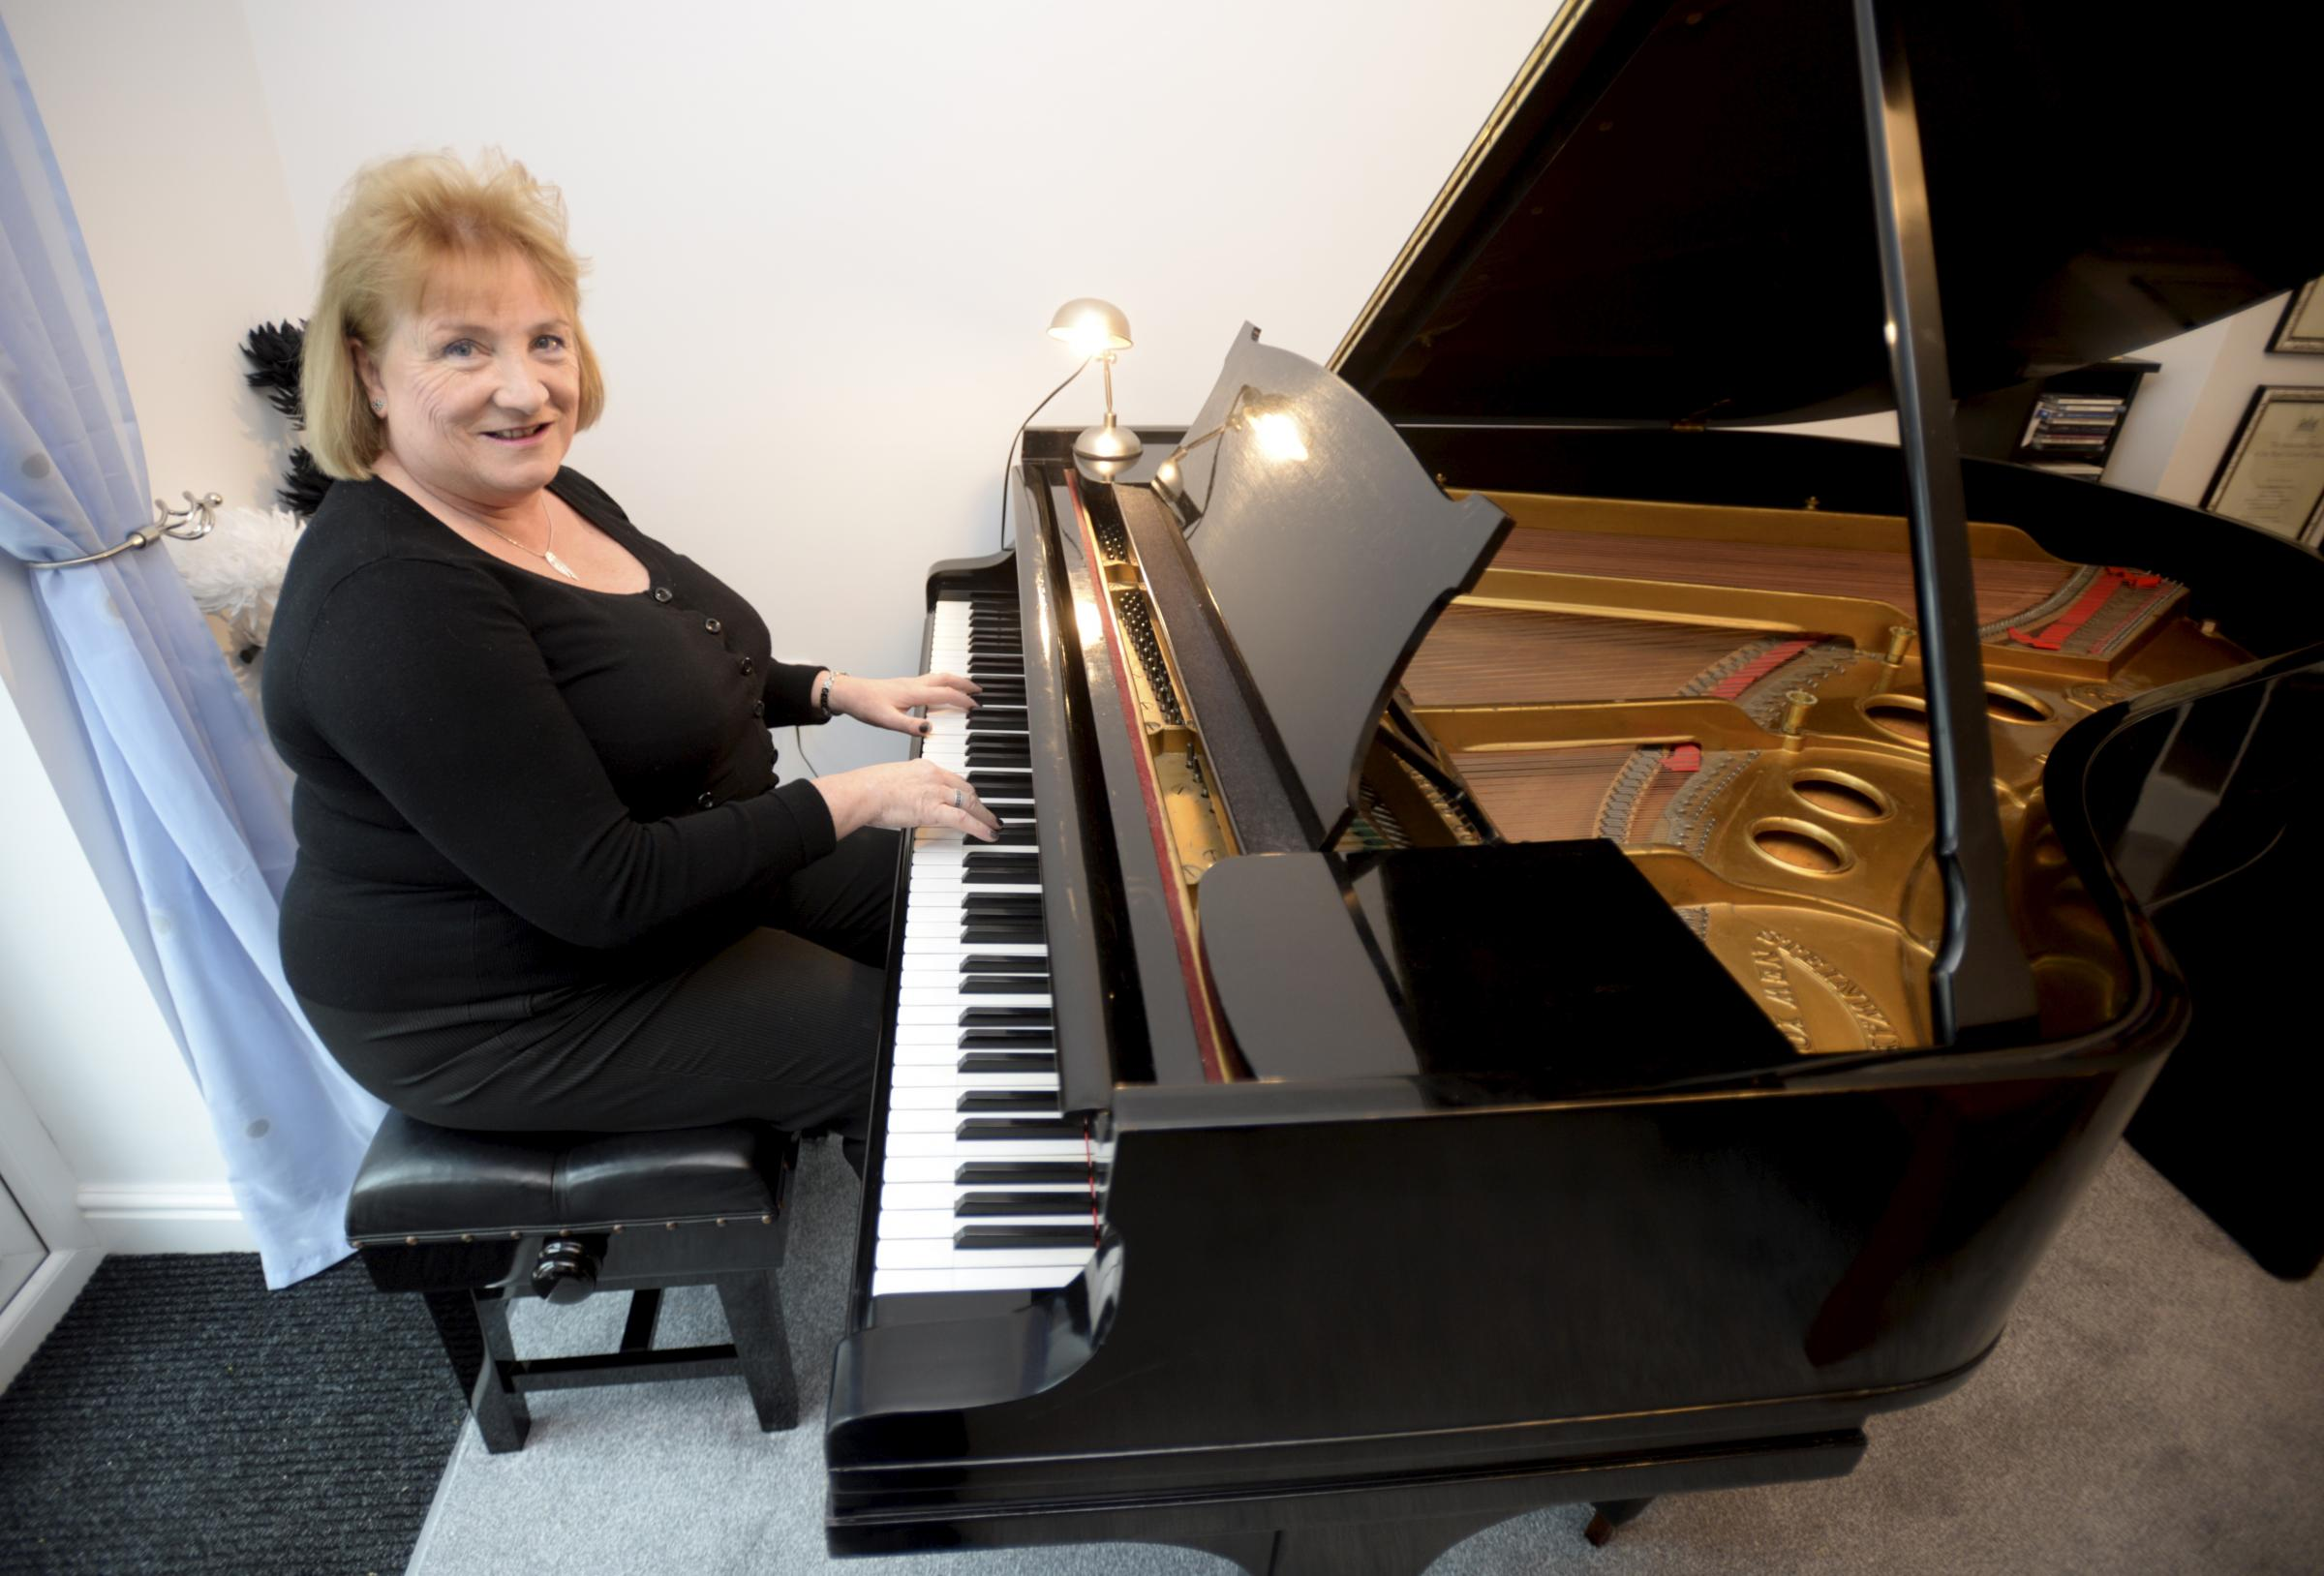 Pianist Julie Johnson-Little playing her piano at home in Swindon, Picture: PAUL NICHOLLS